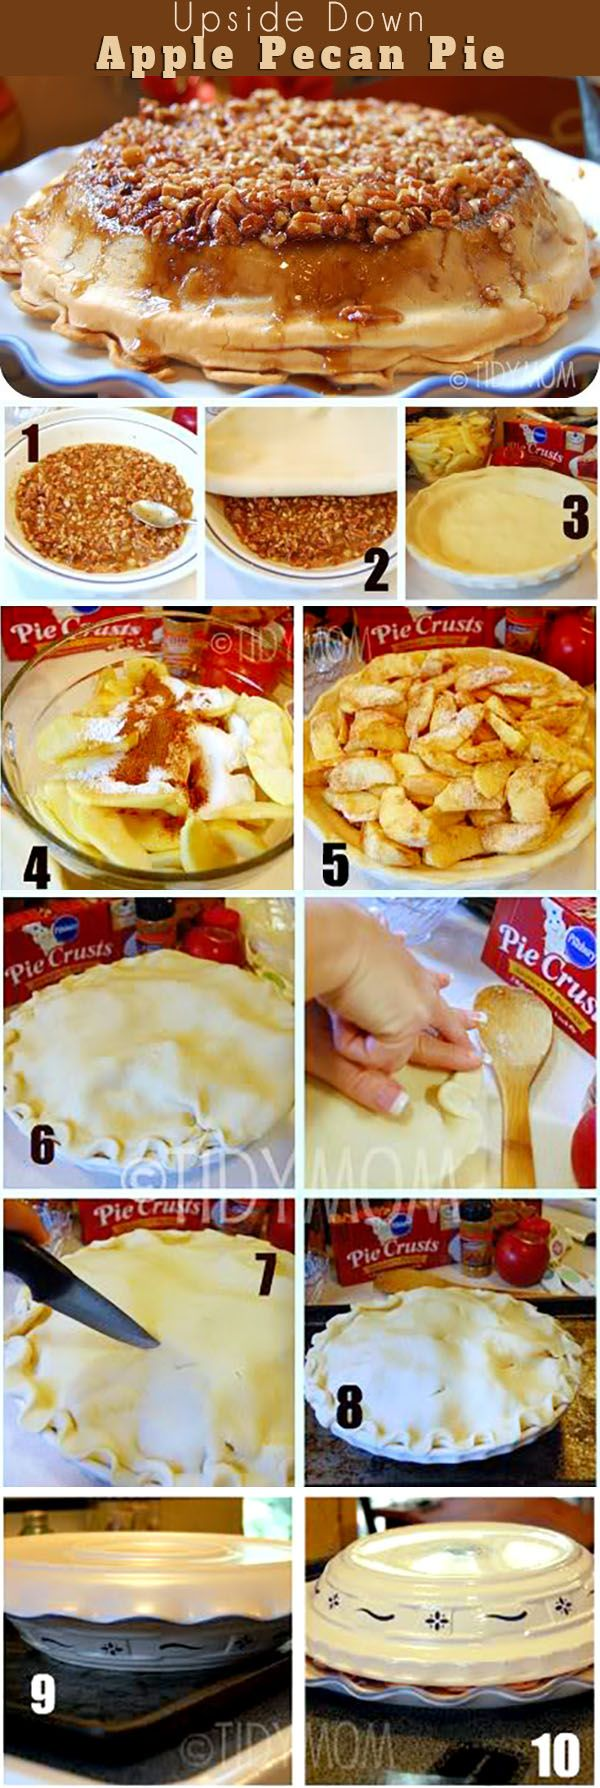 Knock their socks off with this Upside-Down Apple Pecan Pie - so delicious you'll never eat a traditional apple pie again! This  self-glazing, award winning pie is sure to please any crowd. If you like pecan pie and apple pie, you're going to want this apple pie recipe at TidyMom.net